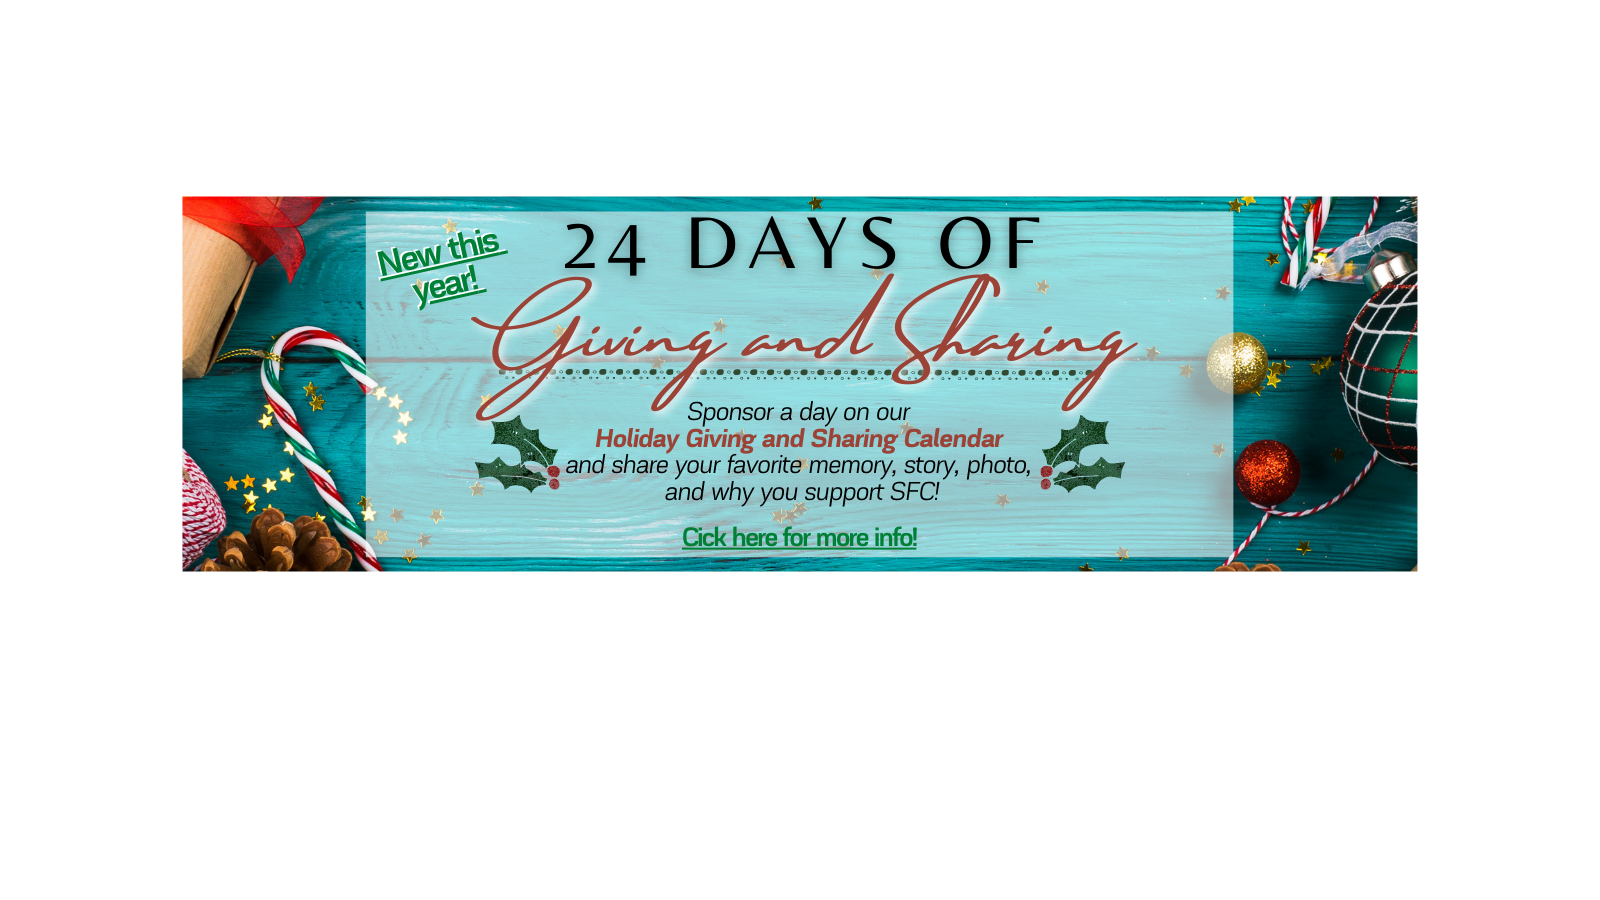 Sponsor a day on our holiday calendar and share your favorite memory of St. Francis Center!